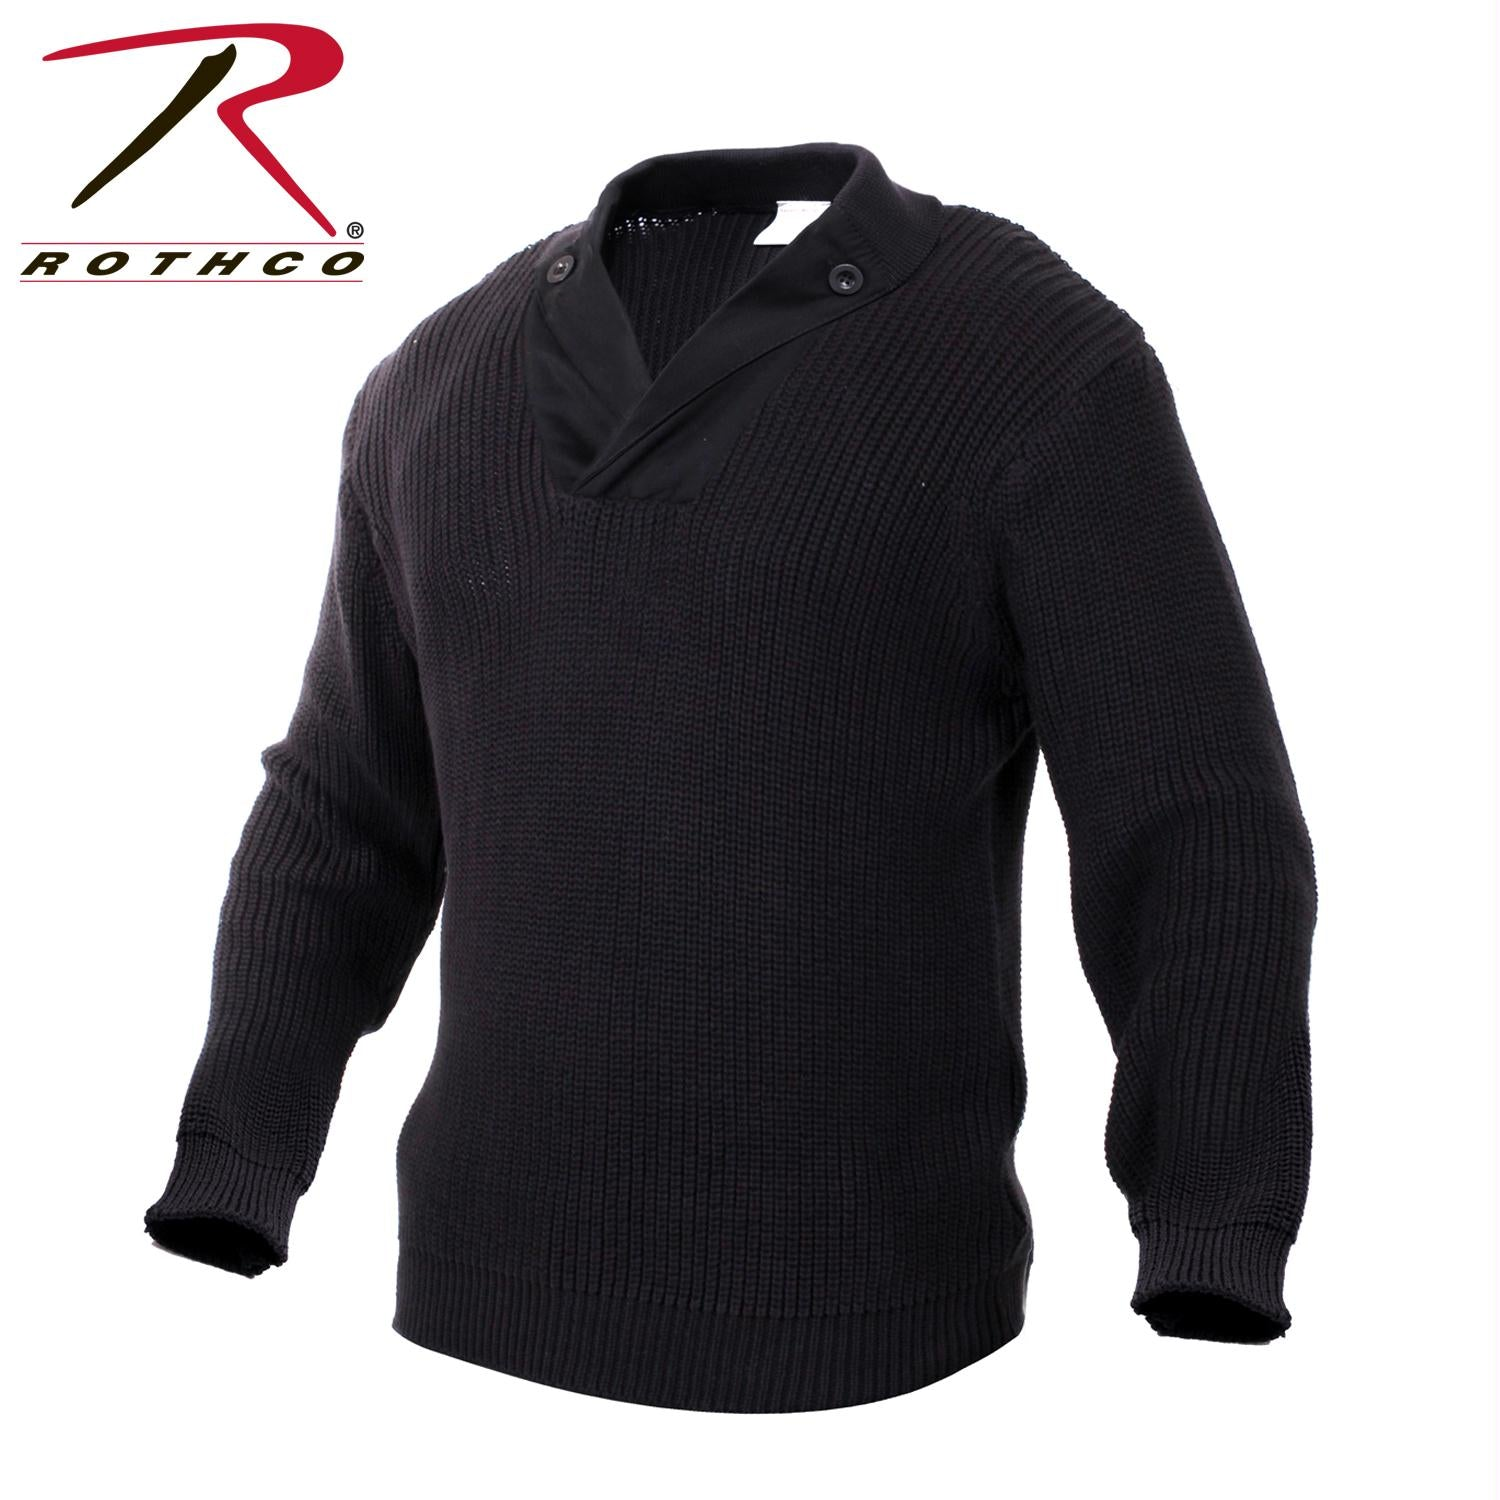 Rothco WWII Vintage Mechanics Sweater - Black / 2XL